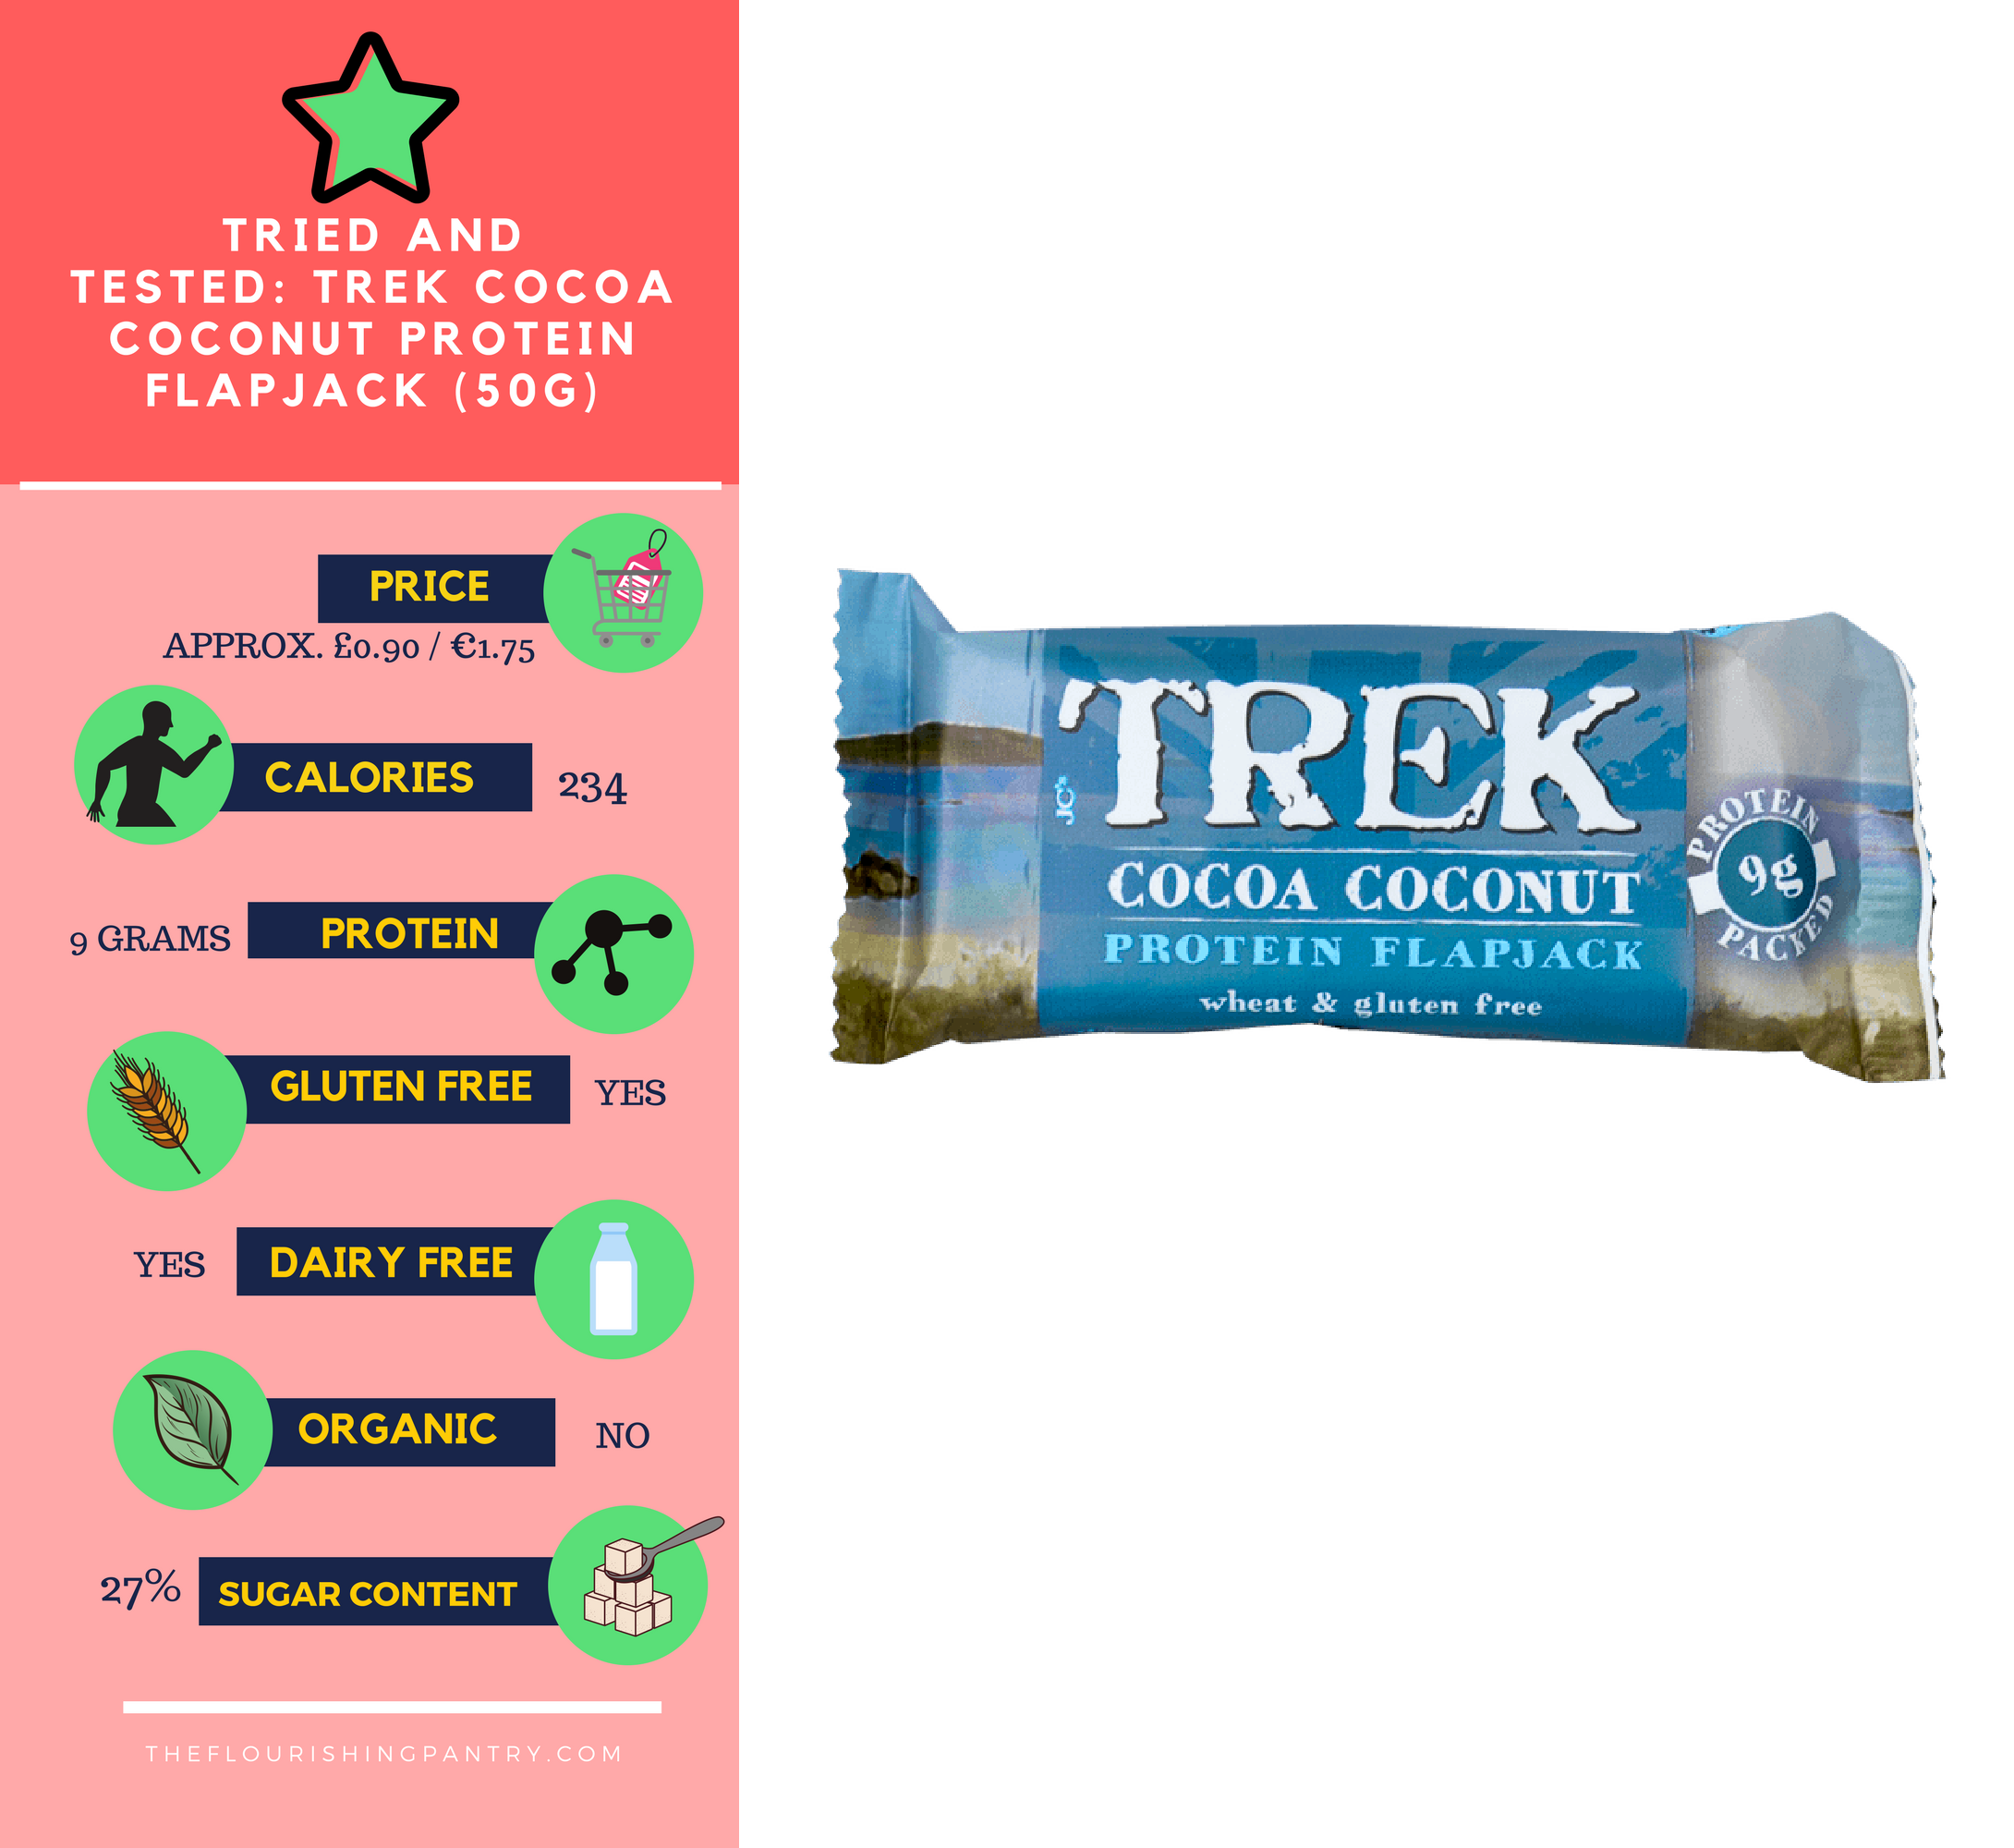 Trek flapjack review | The Flourishing Pantry